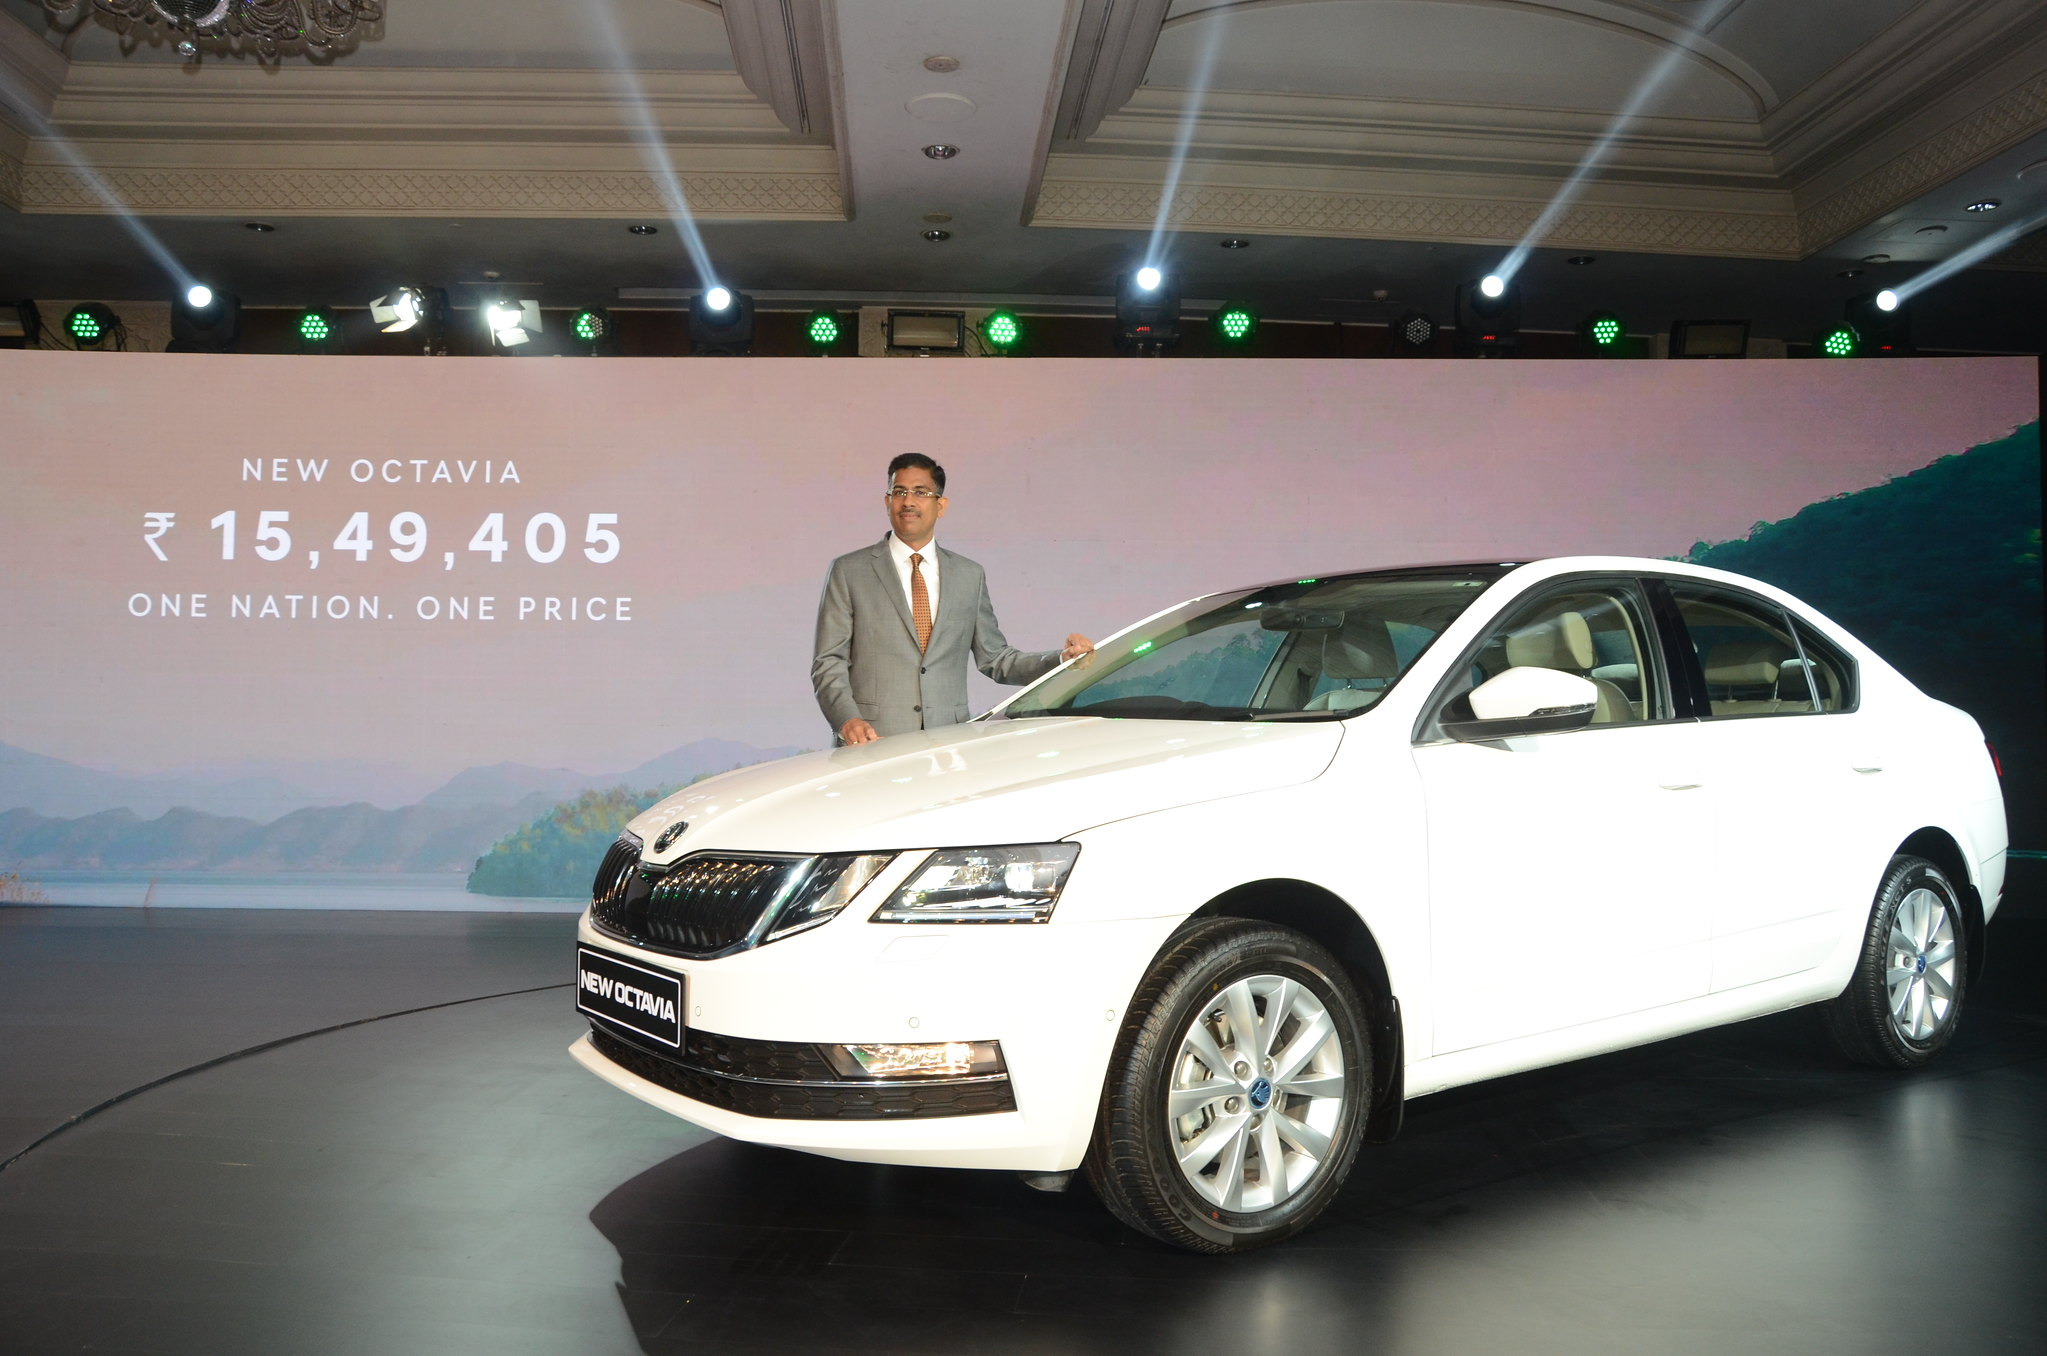 01 Ashutosh Dixit - Director Sales, Service & Marketing at _KODA AUTO India launches the New Octavia